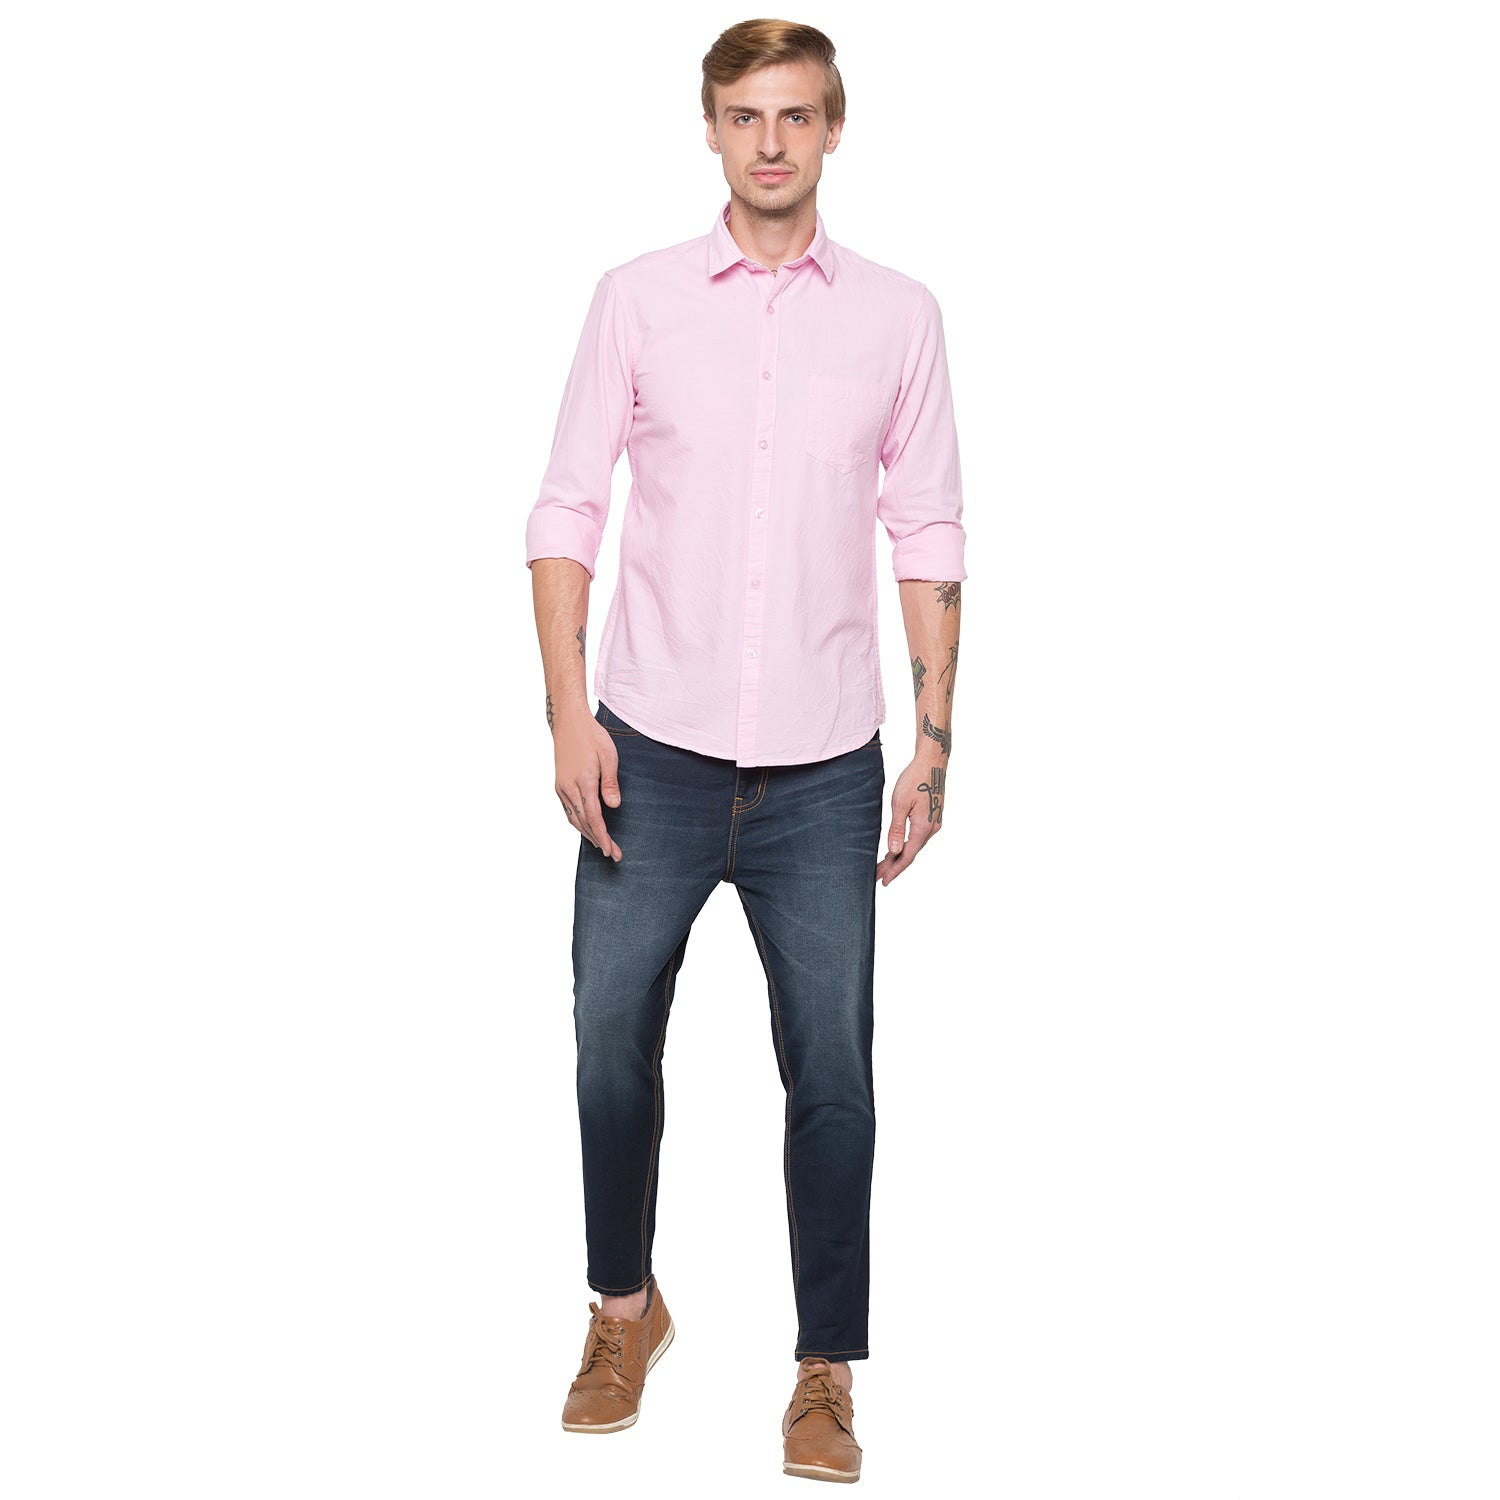 Globus Pink Solid Shirt-4